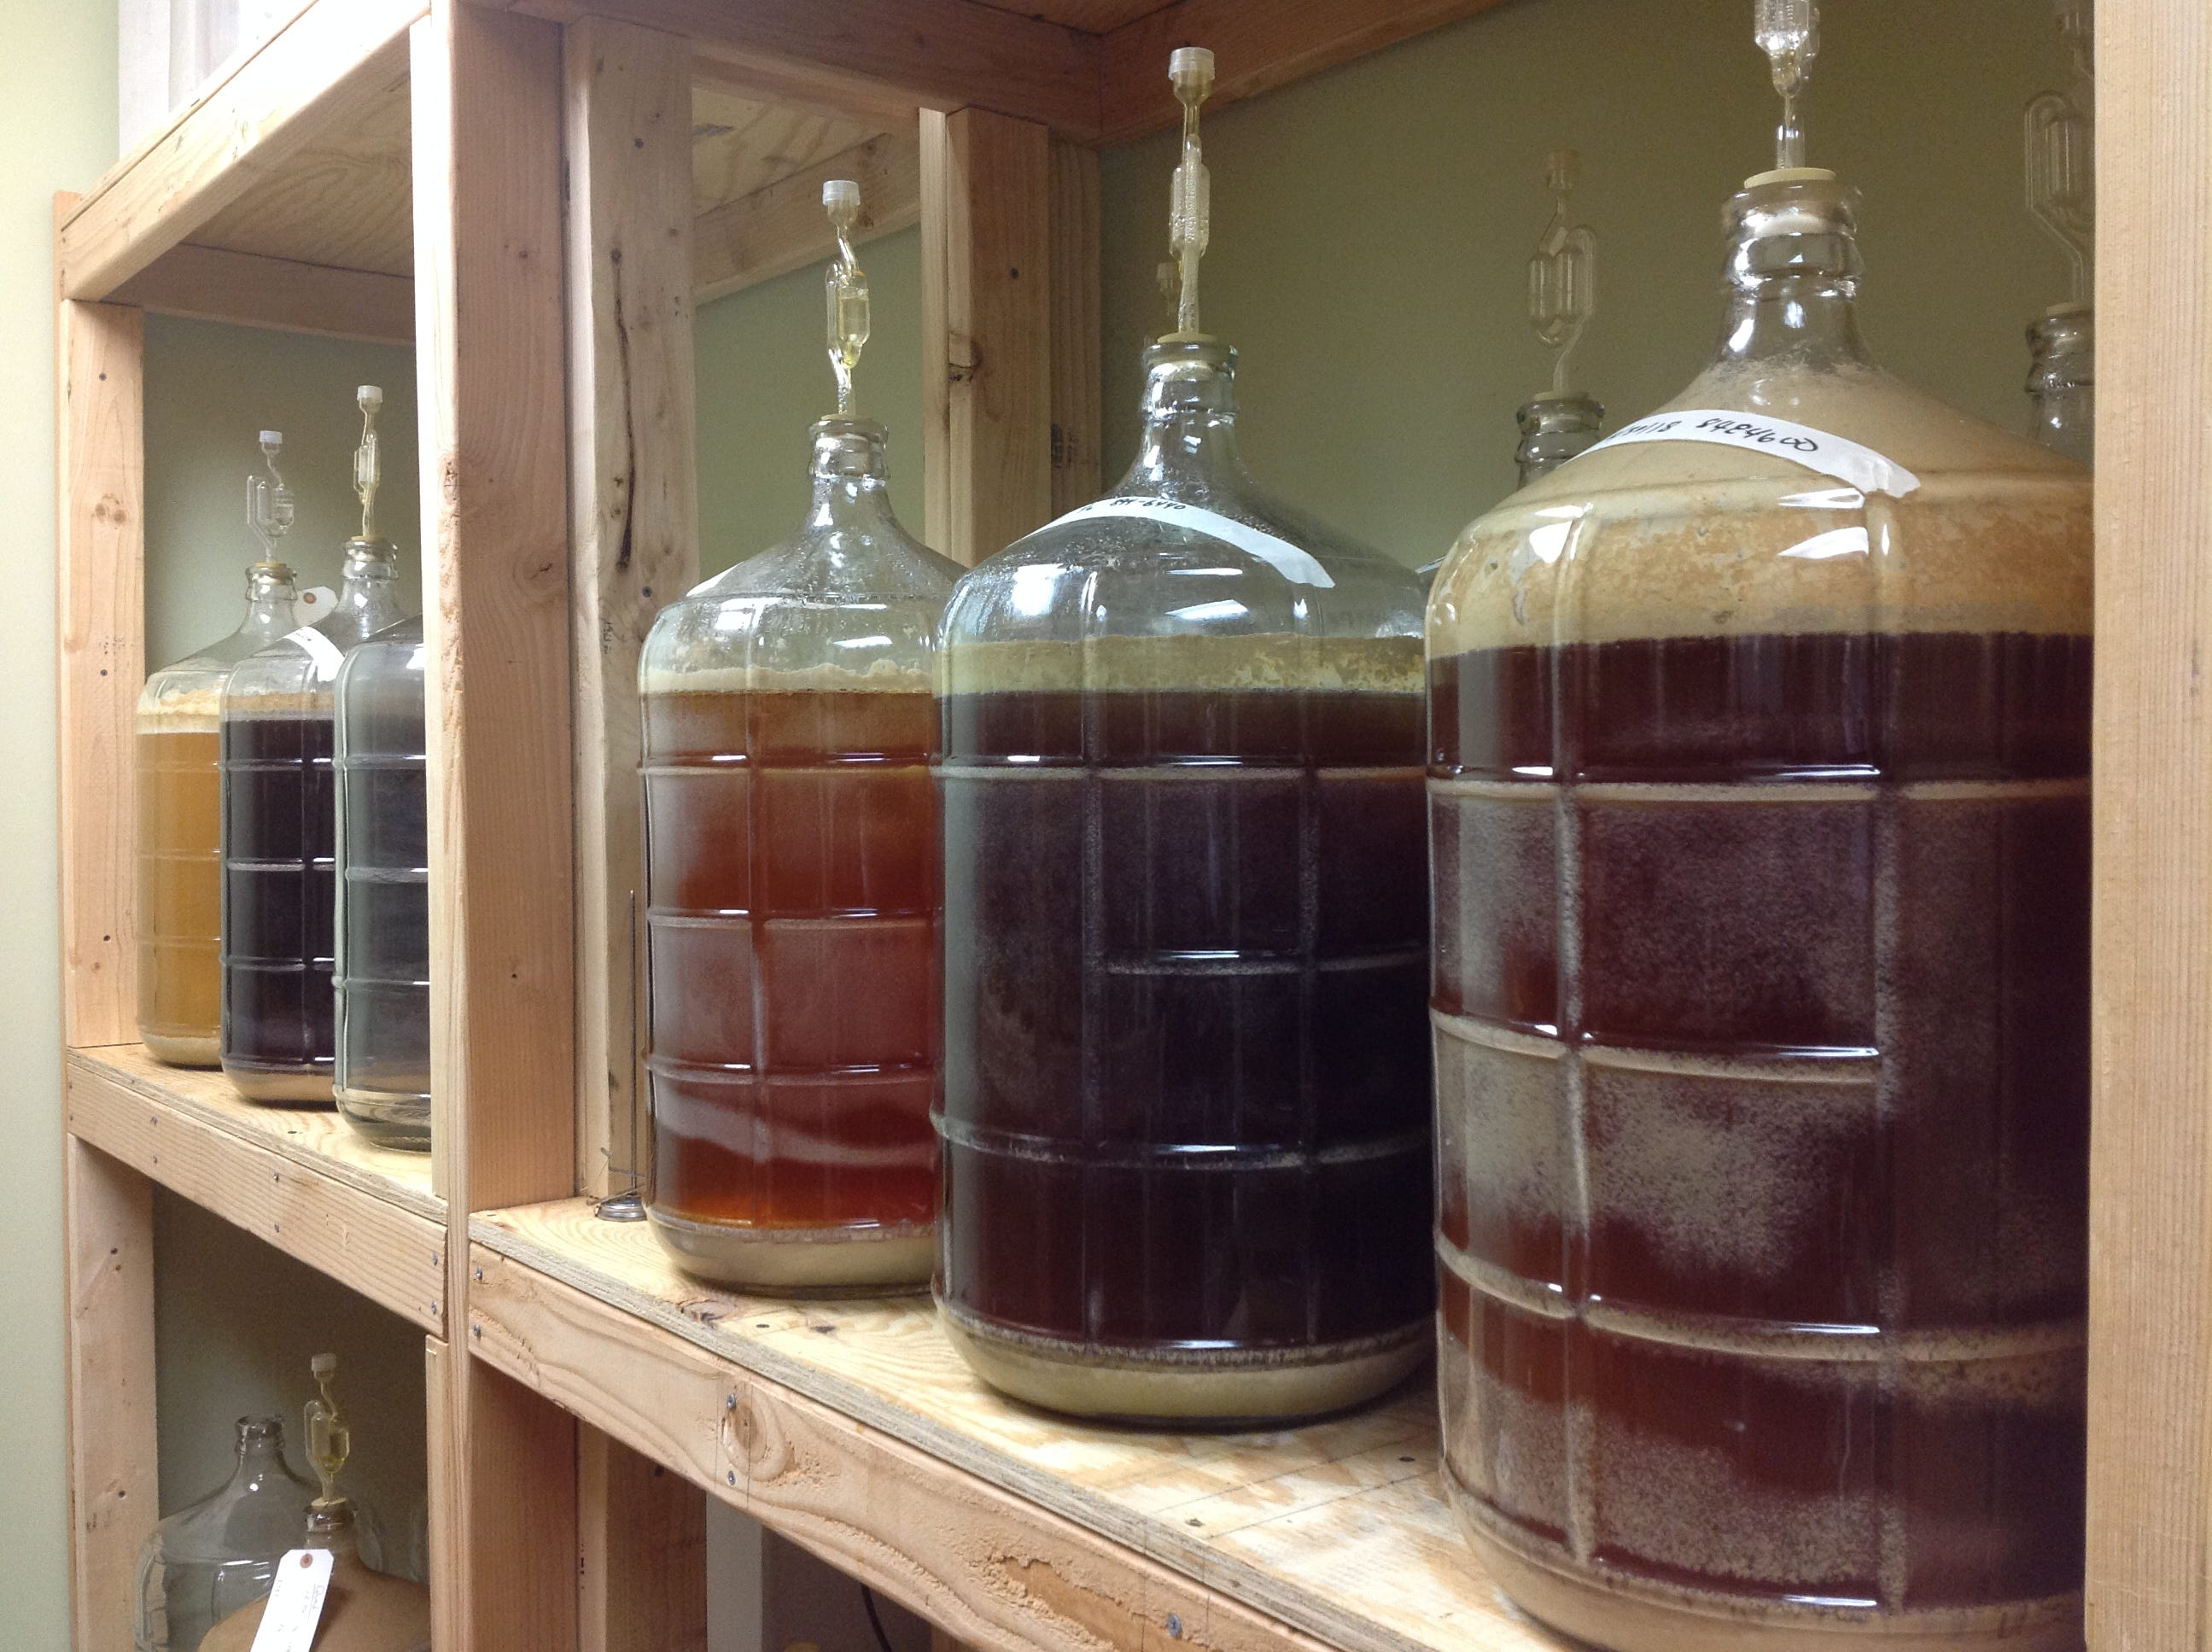 After your beer is brewed, fermentation works its magic as the beer is stored at Show Me Brewing until ready to bottle and drink.